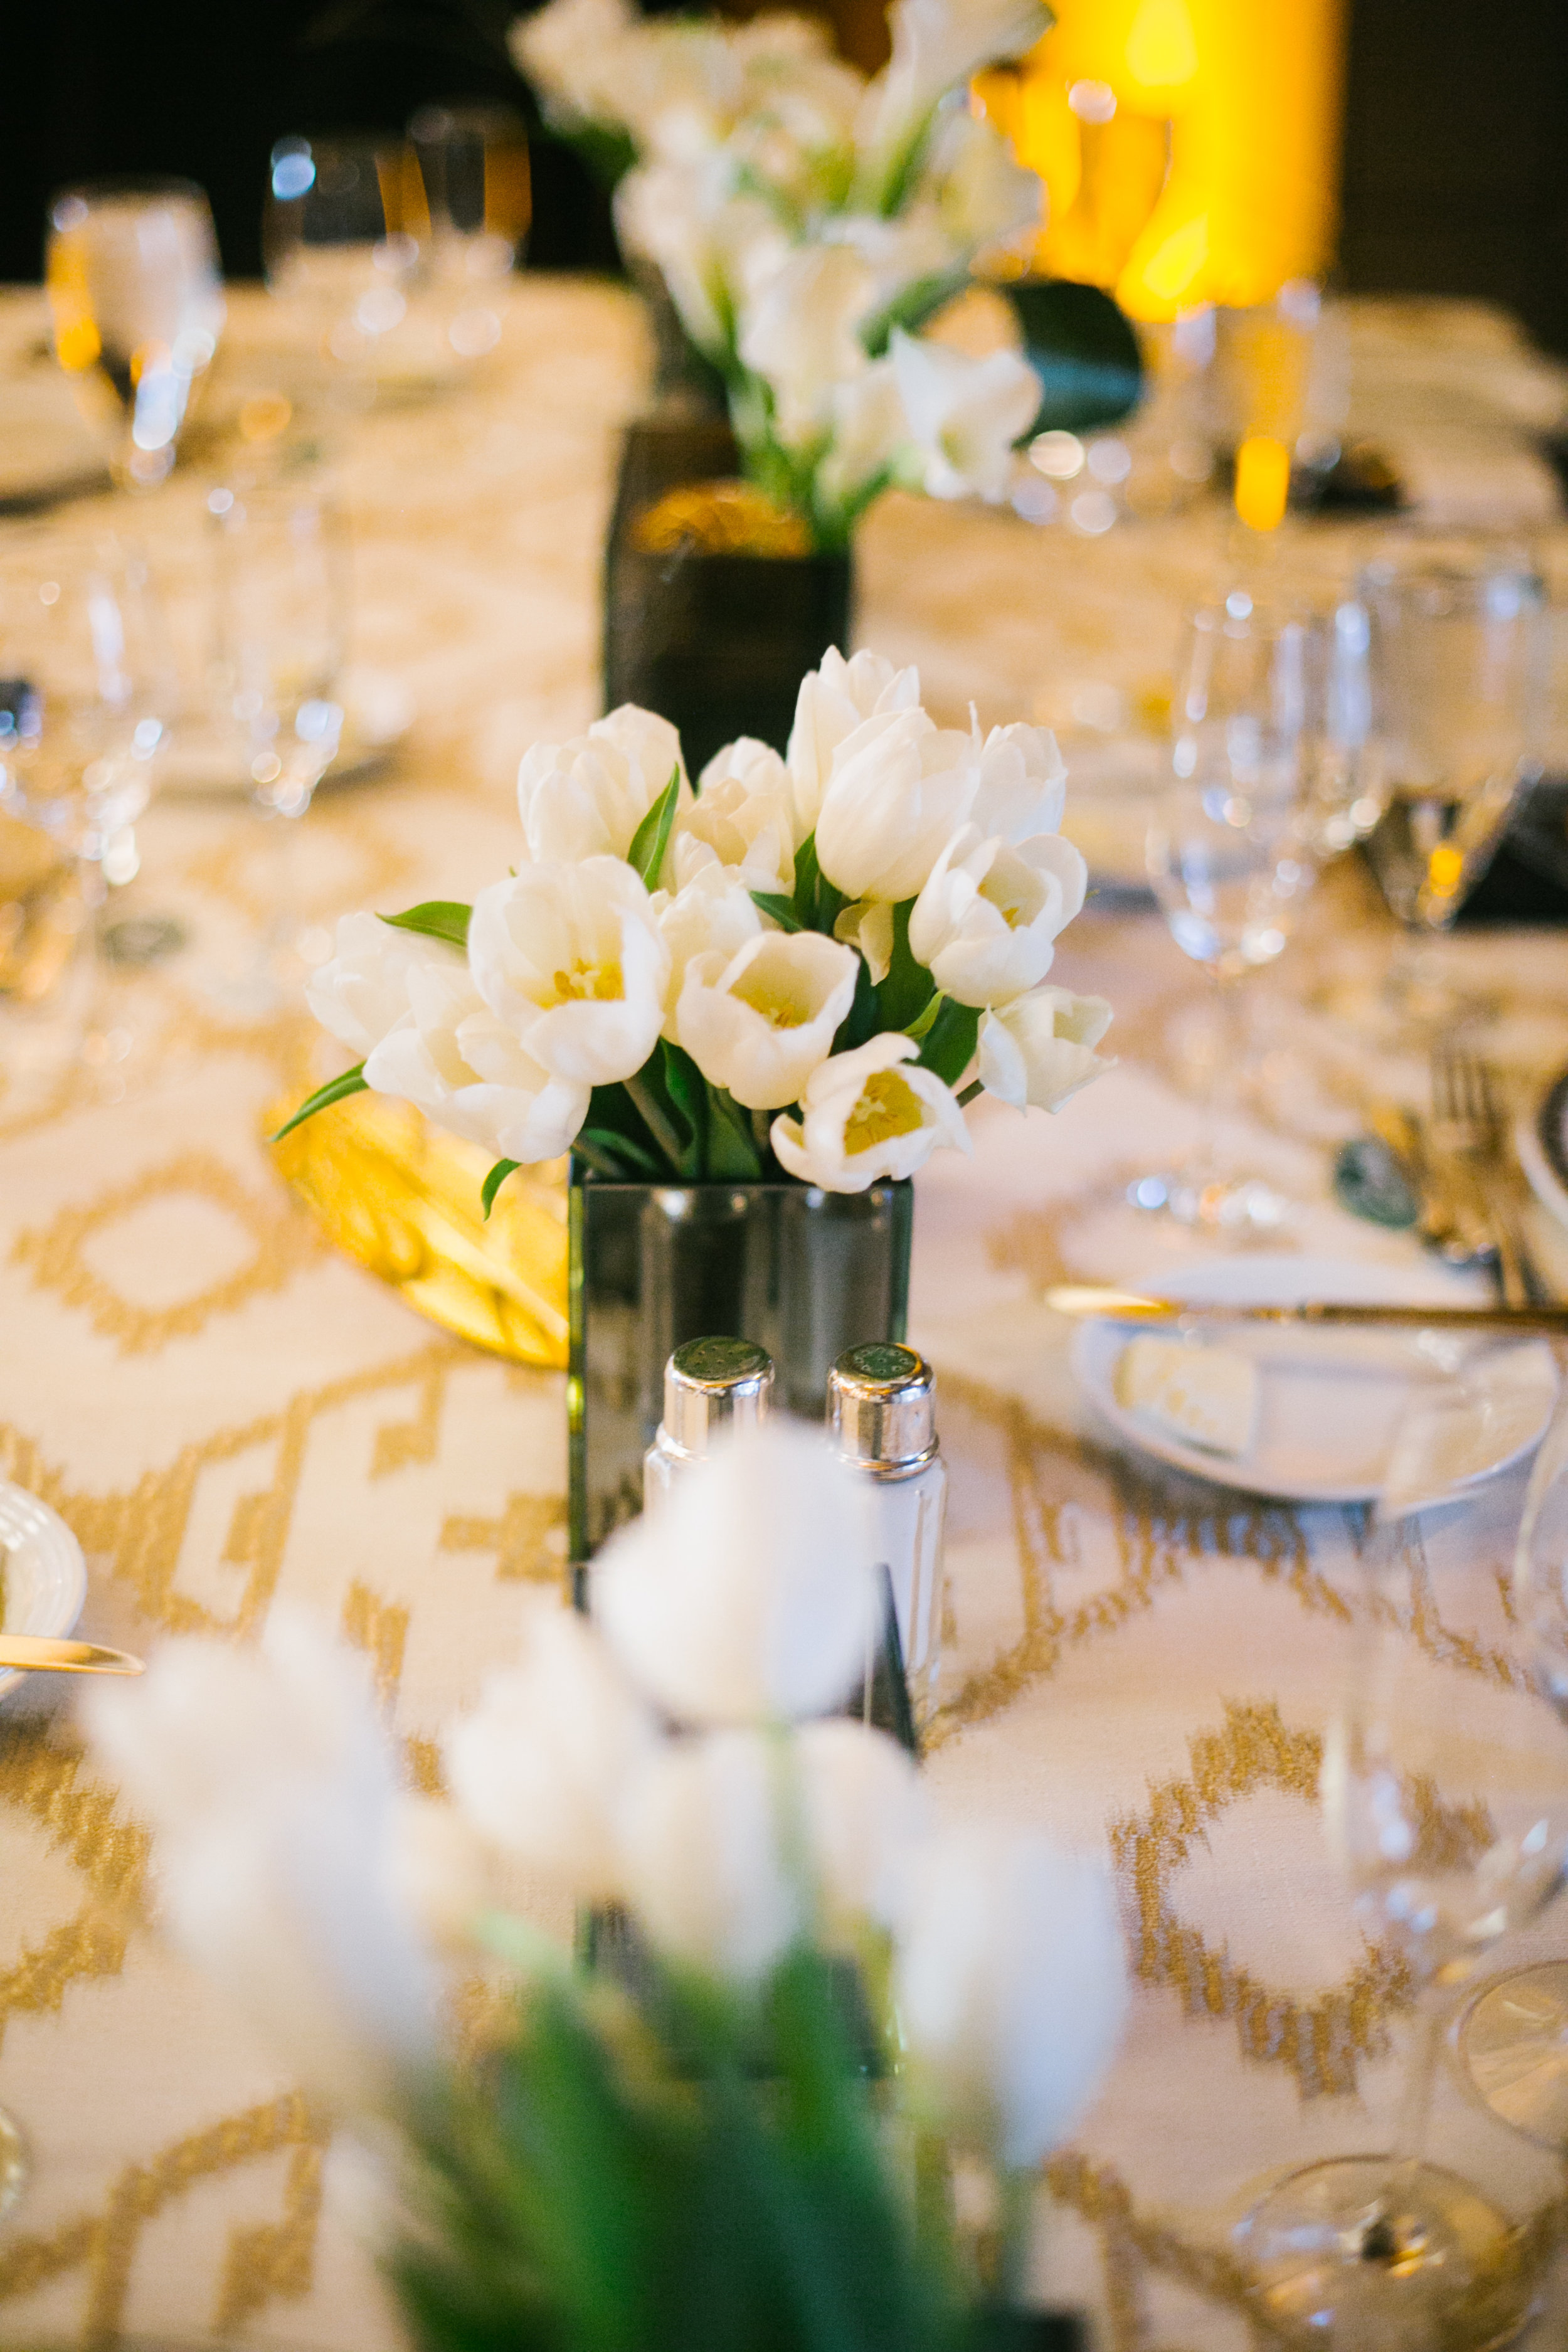 14 white tulips smoke glass vases gold geometric linen table setting simple centerpiece reception dinner table Life Design Events photos by Keith and Melissa Photography.jpg